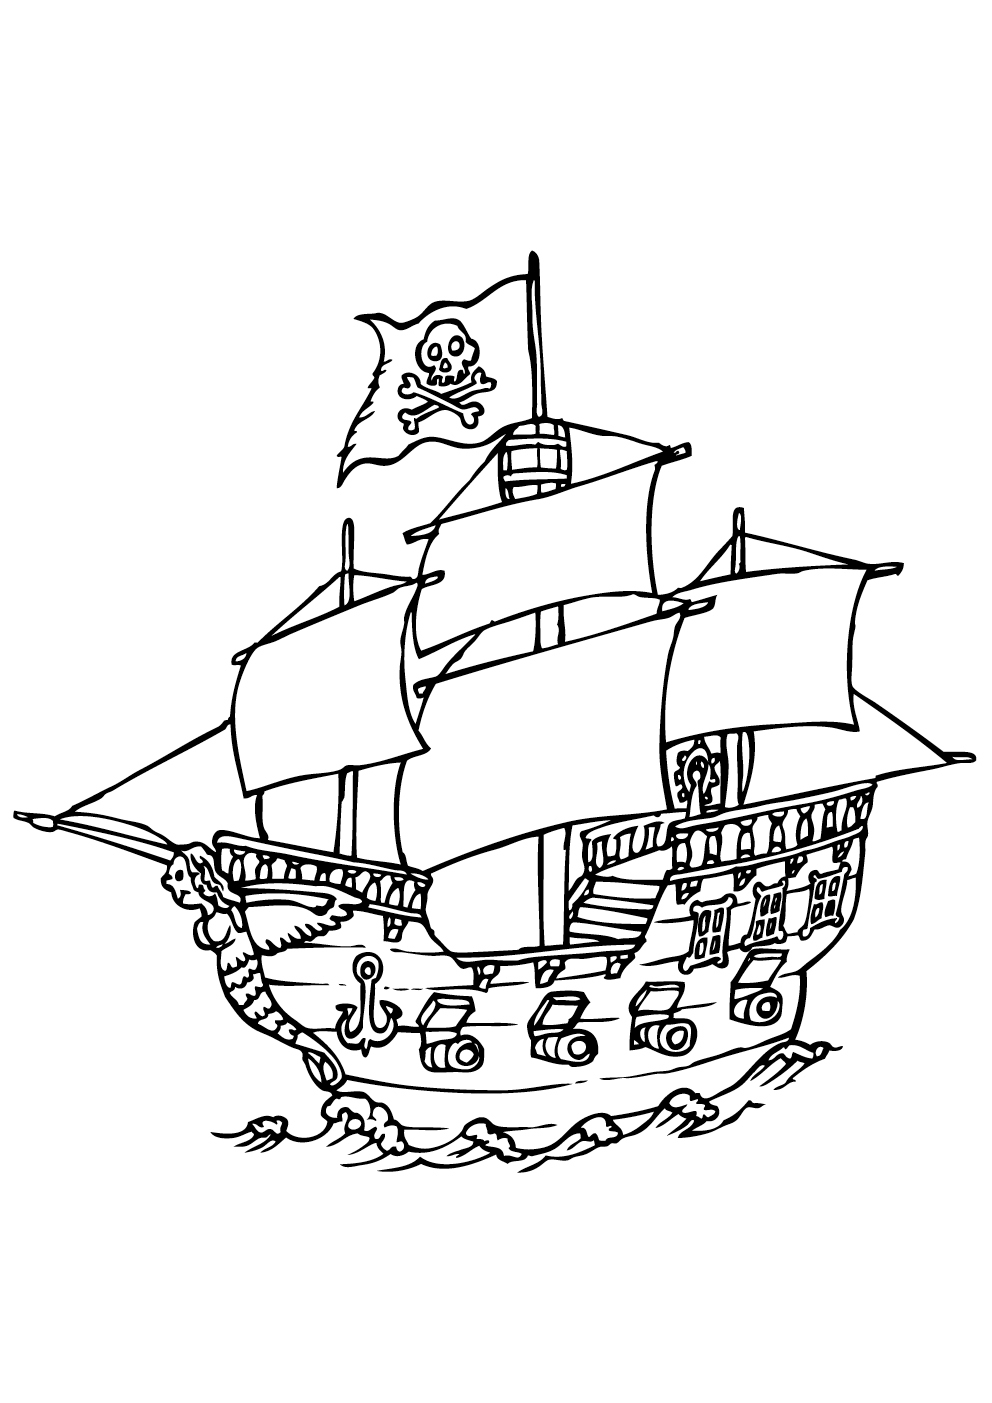 Pirates 8 coloriage de pirates coloriages pour enfants - Coloriage jack le pirate ...